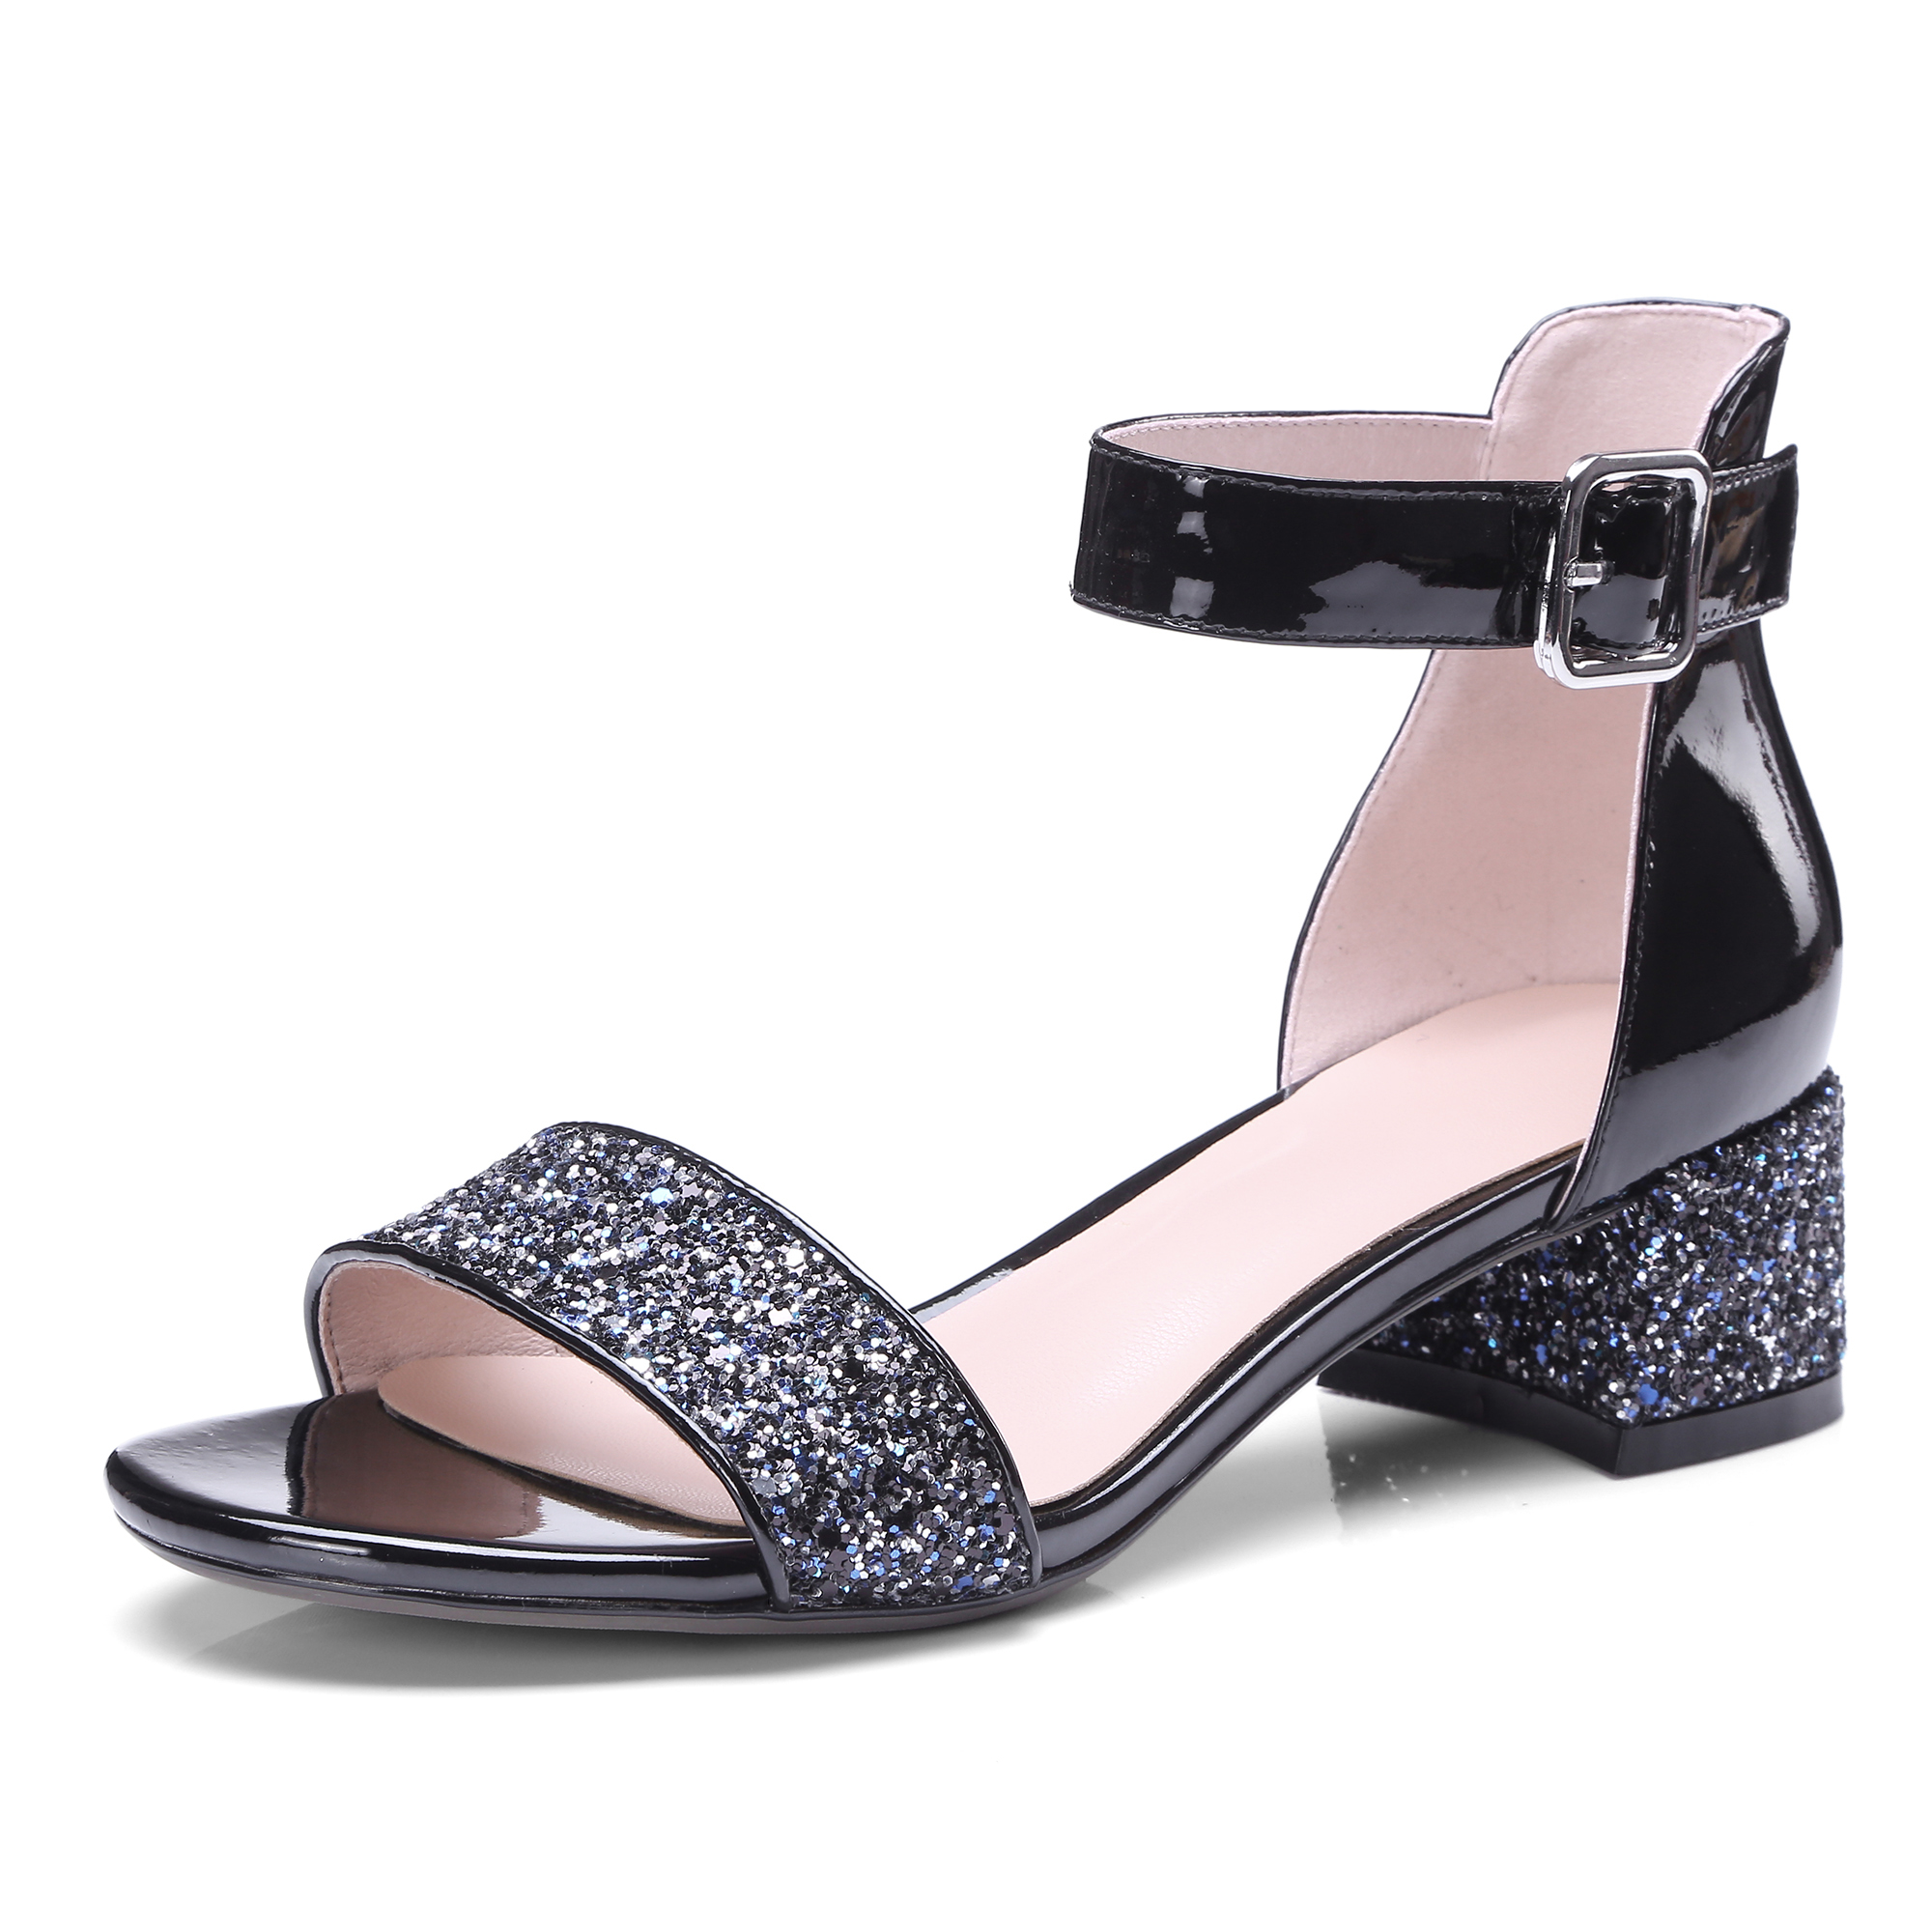 Silver Black Glitter Leather Summer Sandals Ankle Strap Thick High Tendencies Footbed 2 Hitam 43 Heel Cover Shoes 4cm Sandalen Dames In Middle Heels From On